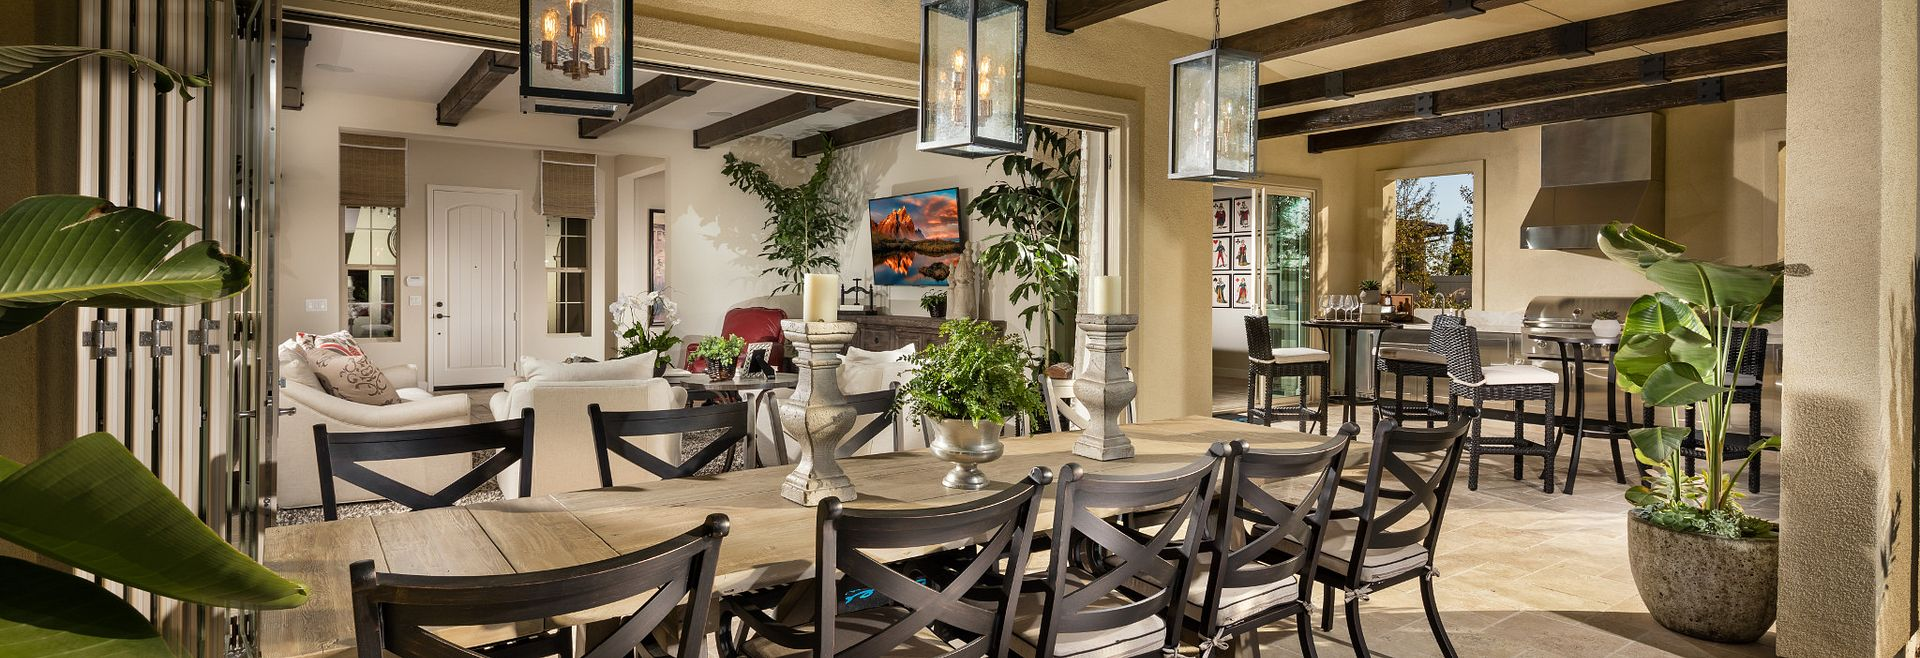 Plan 4 outdoor room with long table, surrounding chairs, and pendant lights